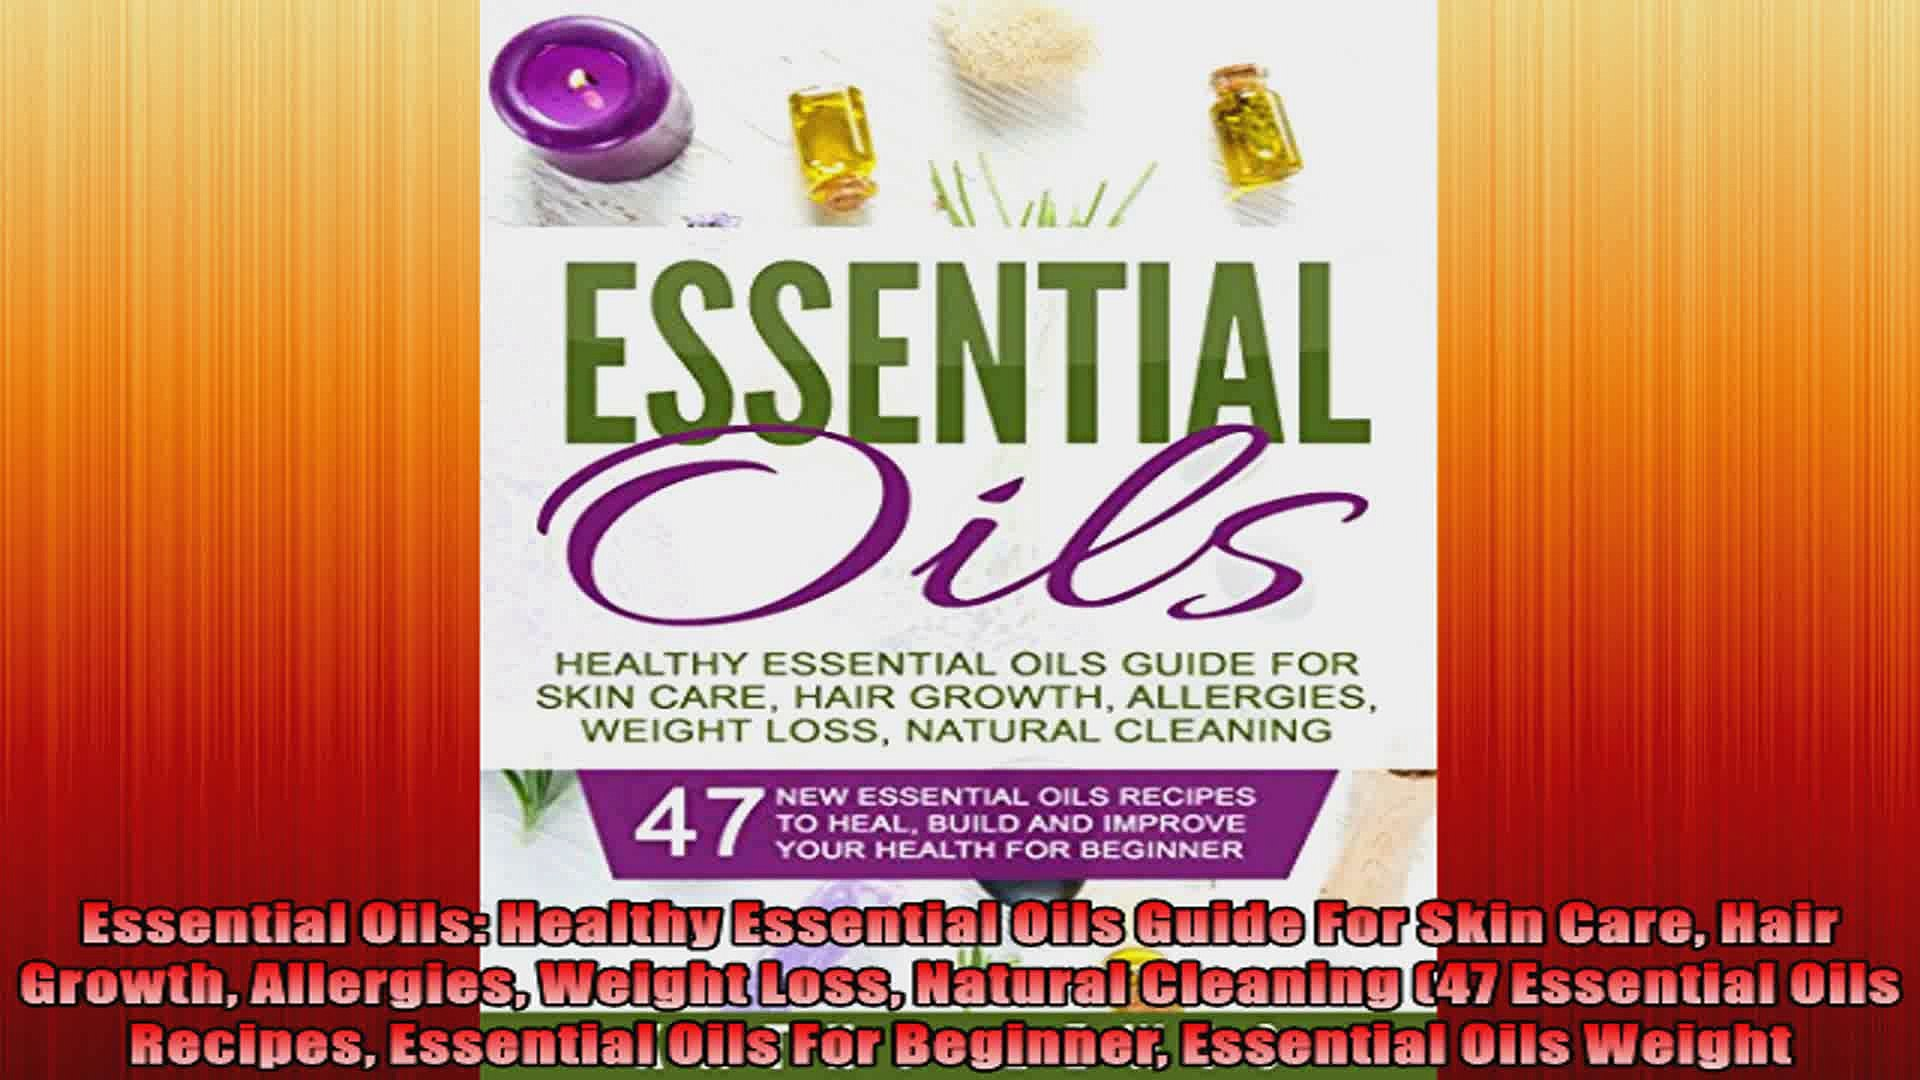 Essential Oils Healthy Essential Oils Guide For Skin Care Hair Growth Allergies Weight Video Dailymotion